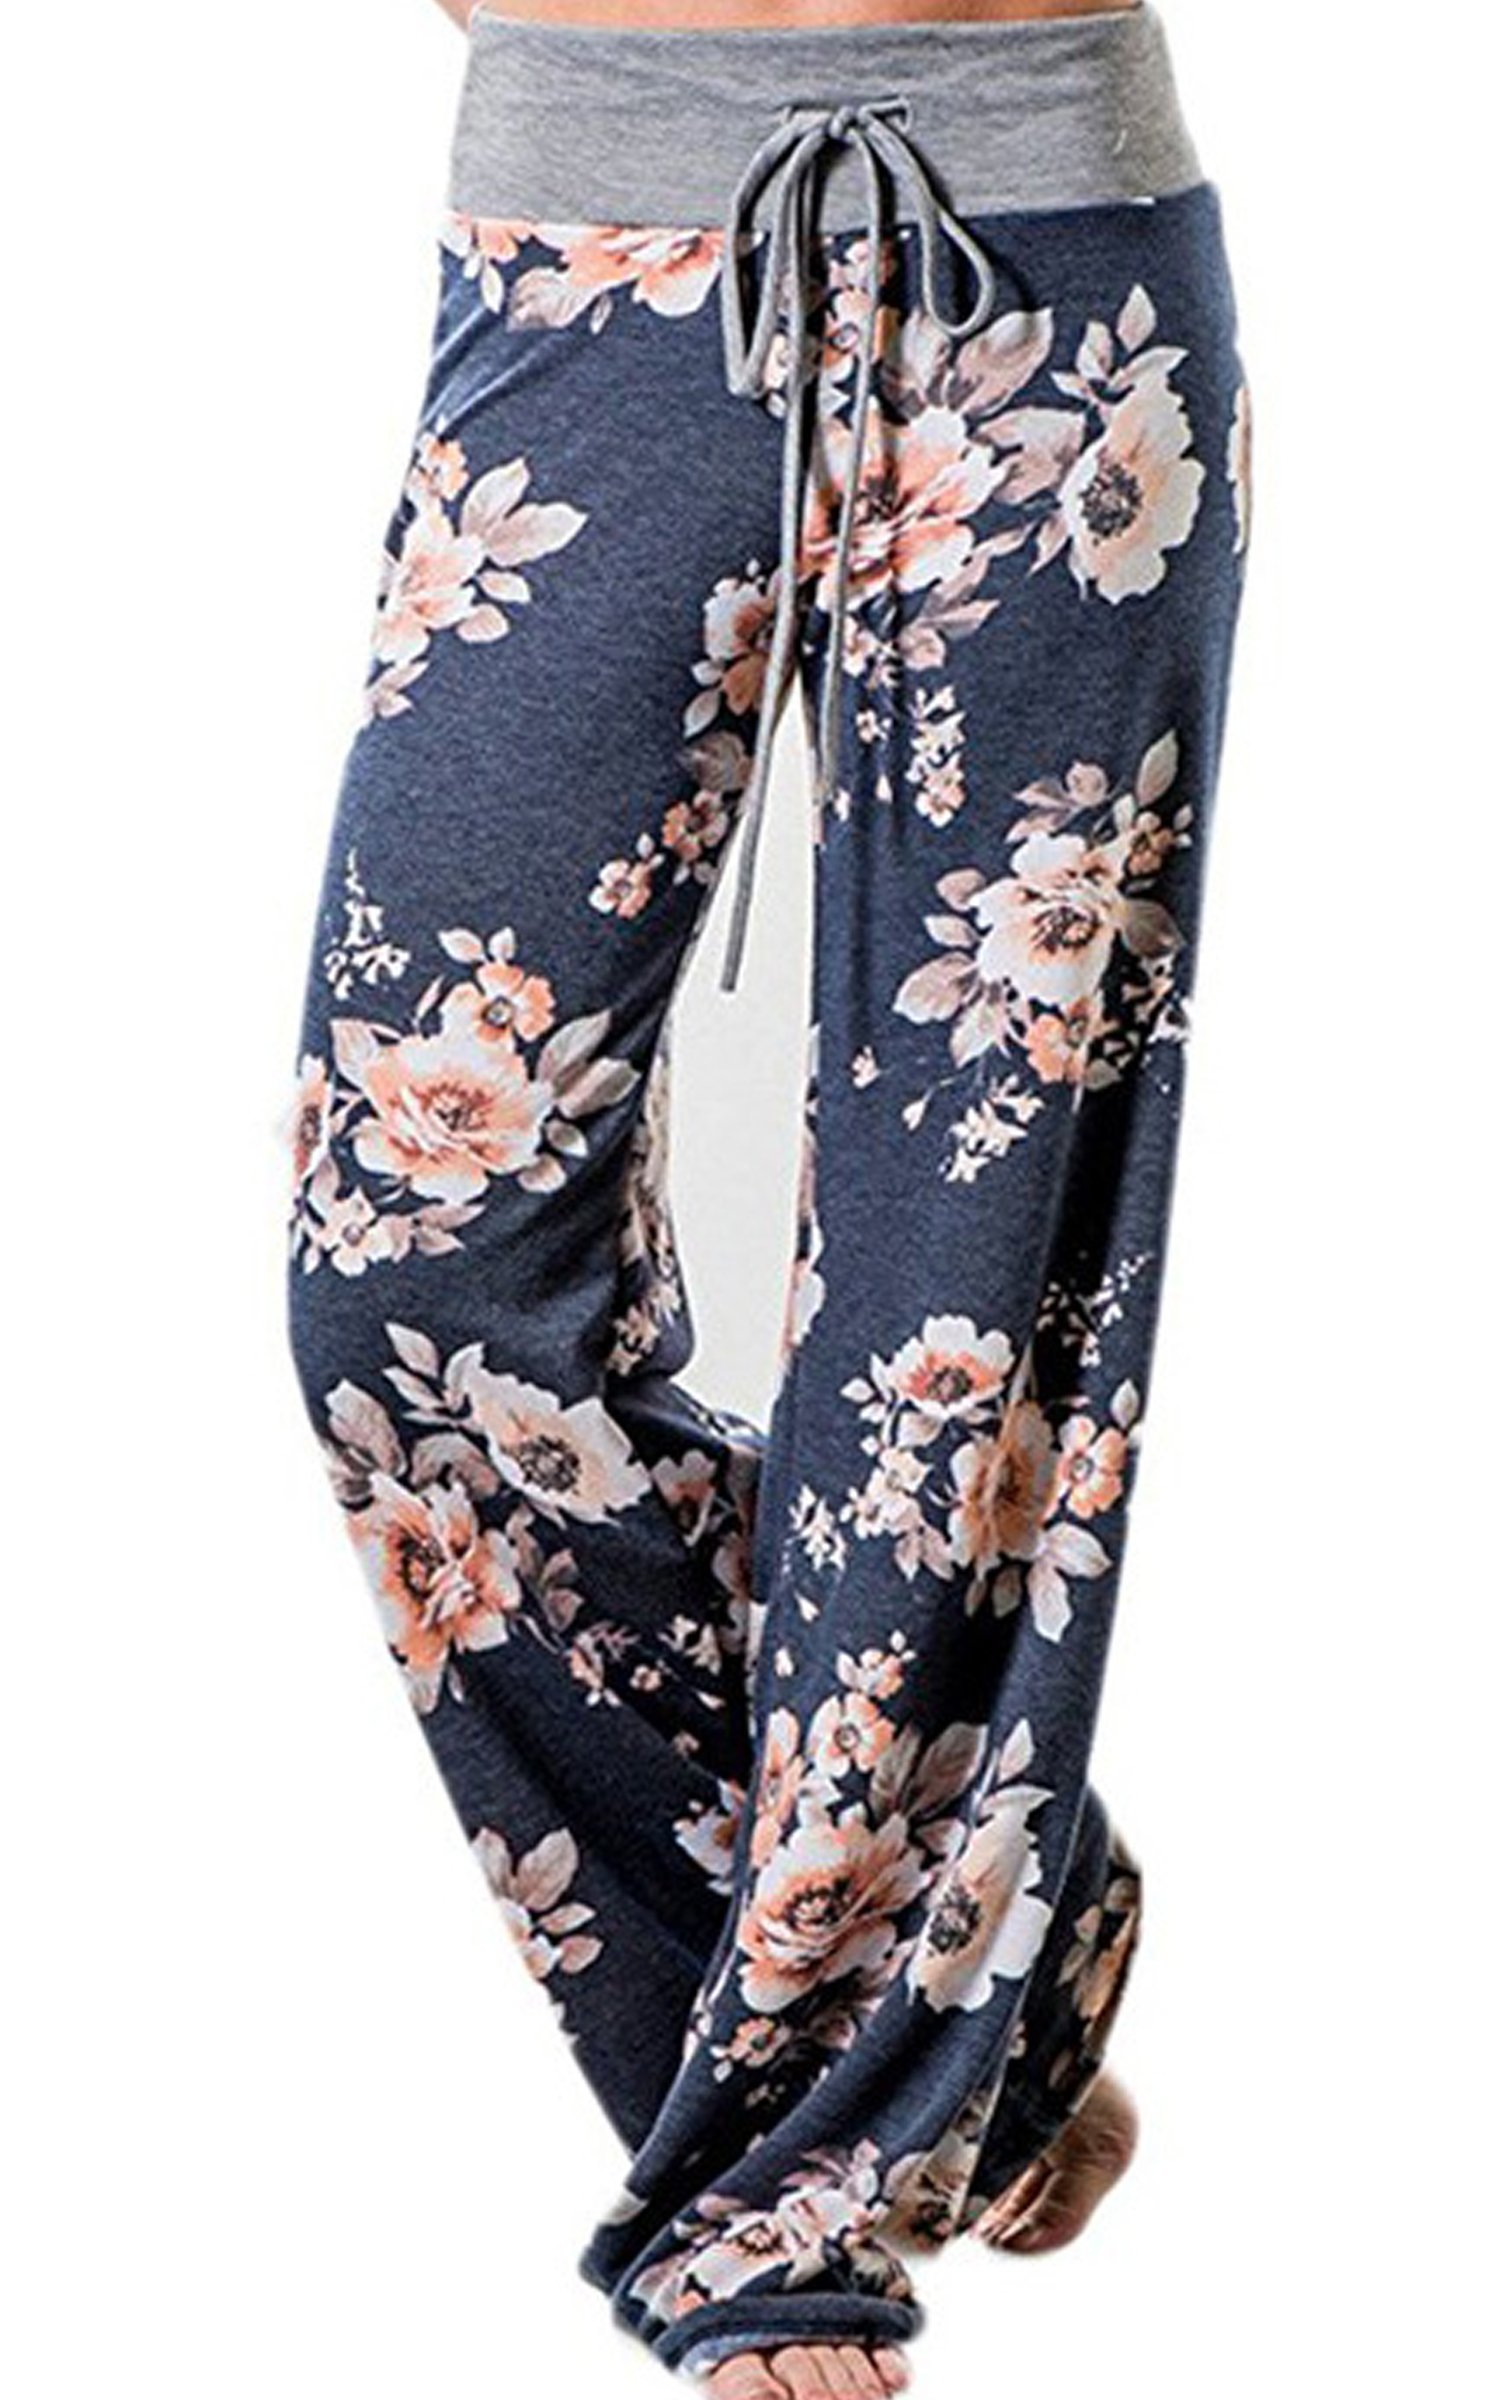 Angashion Women's High Waist Casual Floral Print Drawstring Wide Leg Pants,Blue0486,US 2/Tag S